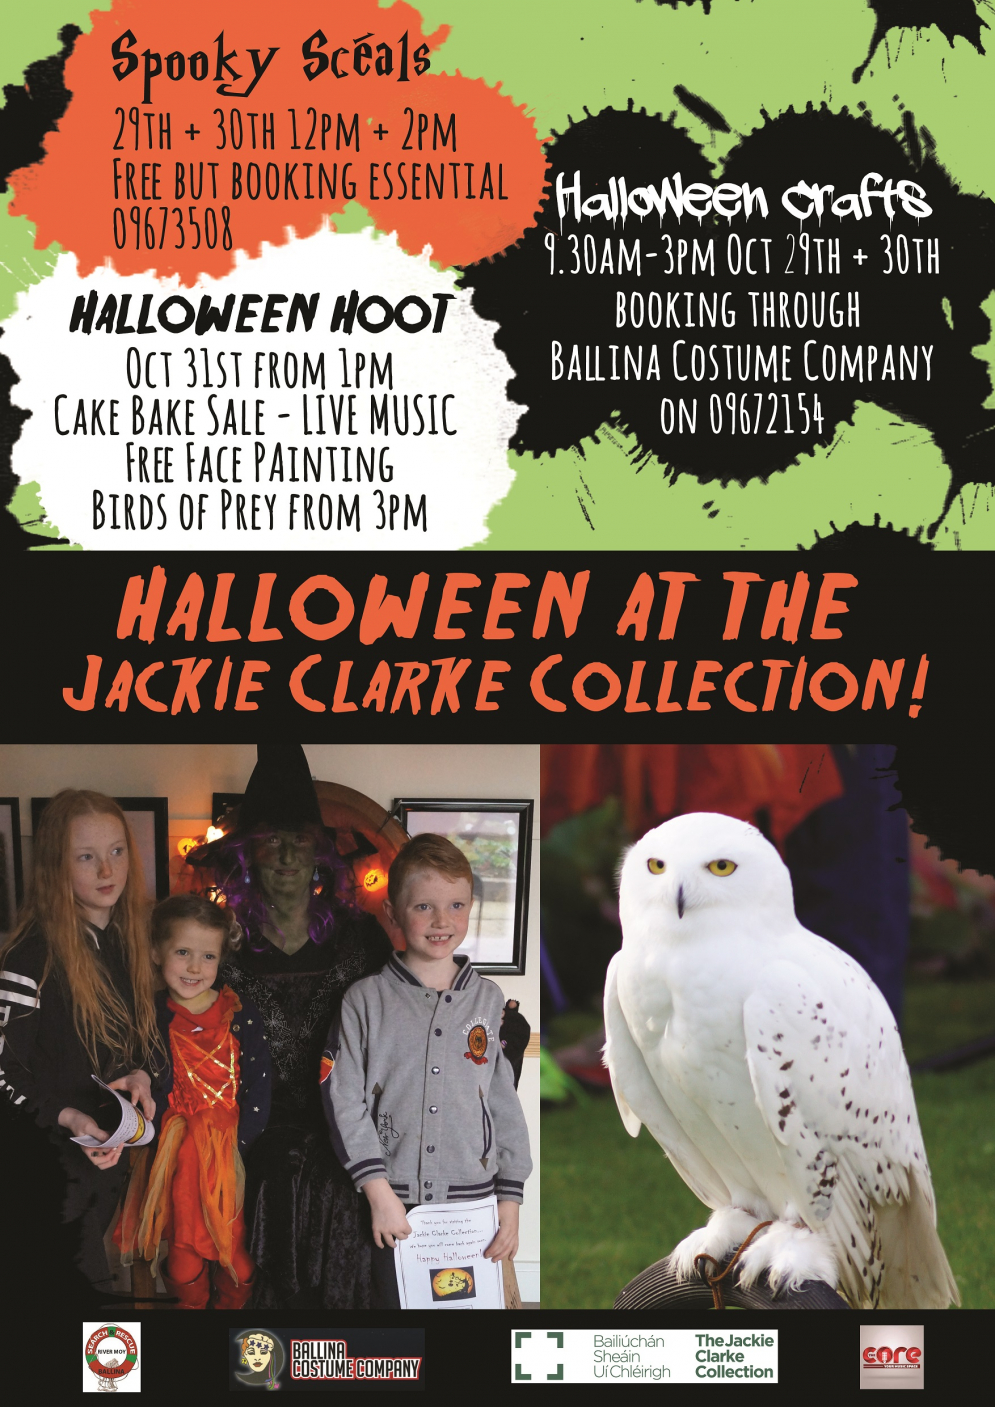 Halloween at the Jackie Clarke Collection